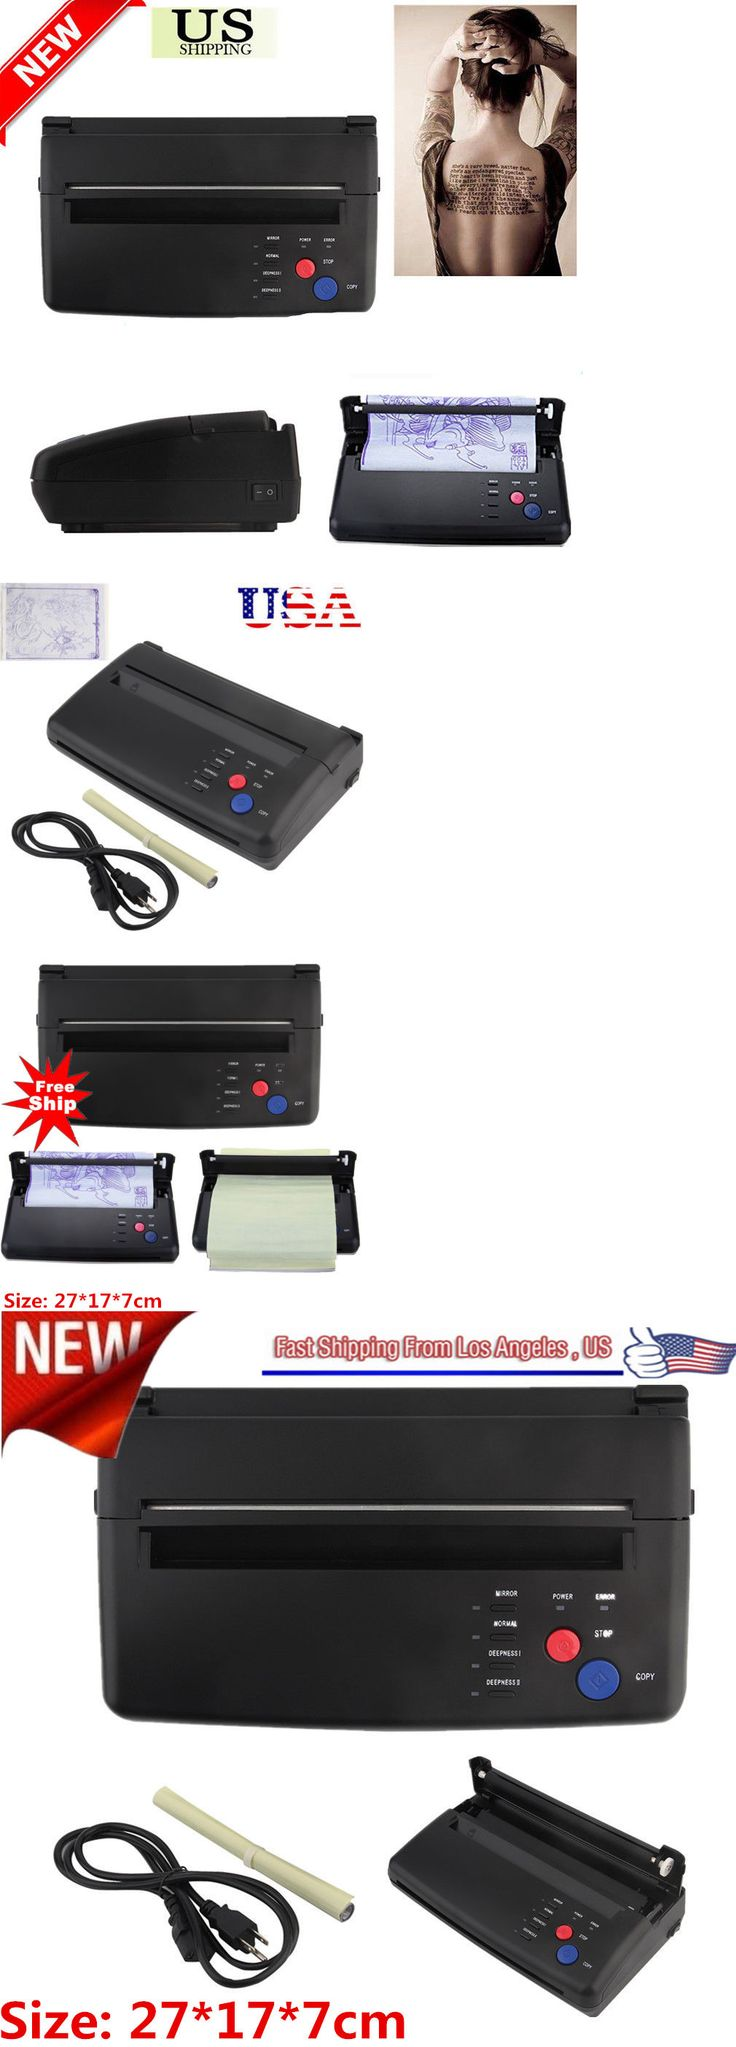 Tattoo Supplies: Pro Black Tattoo Transfer Copier Printer Machine Thermal Stencil Paper Maker Ms BUY IT NOW ONLY: $111.09